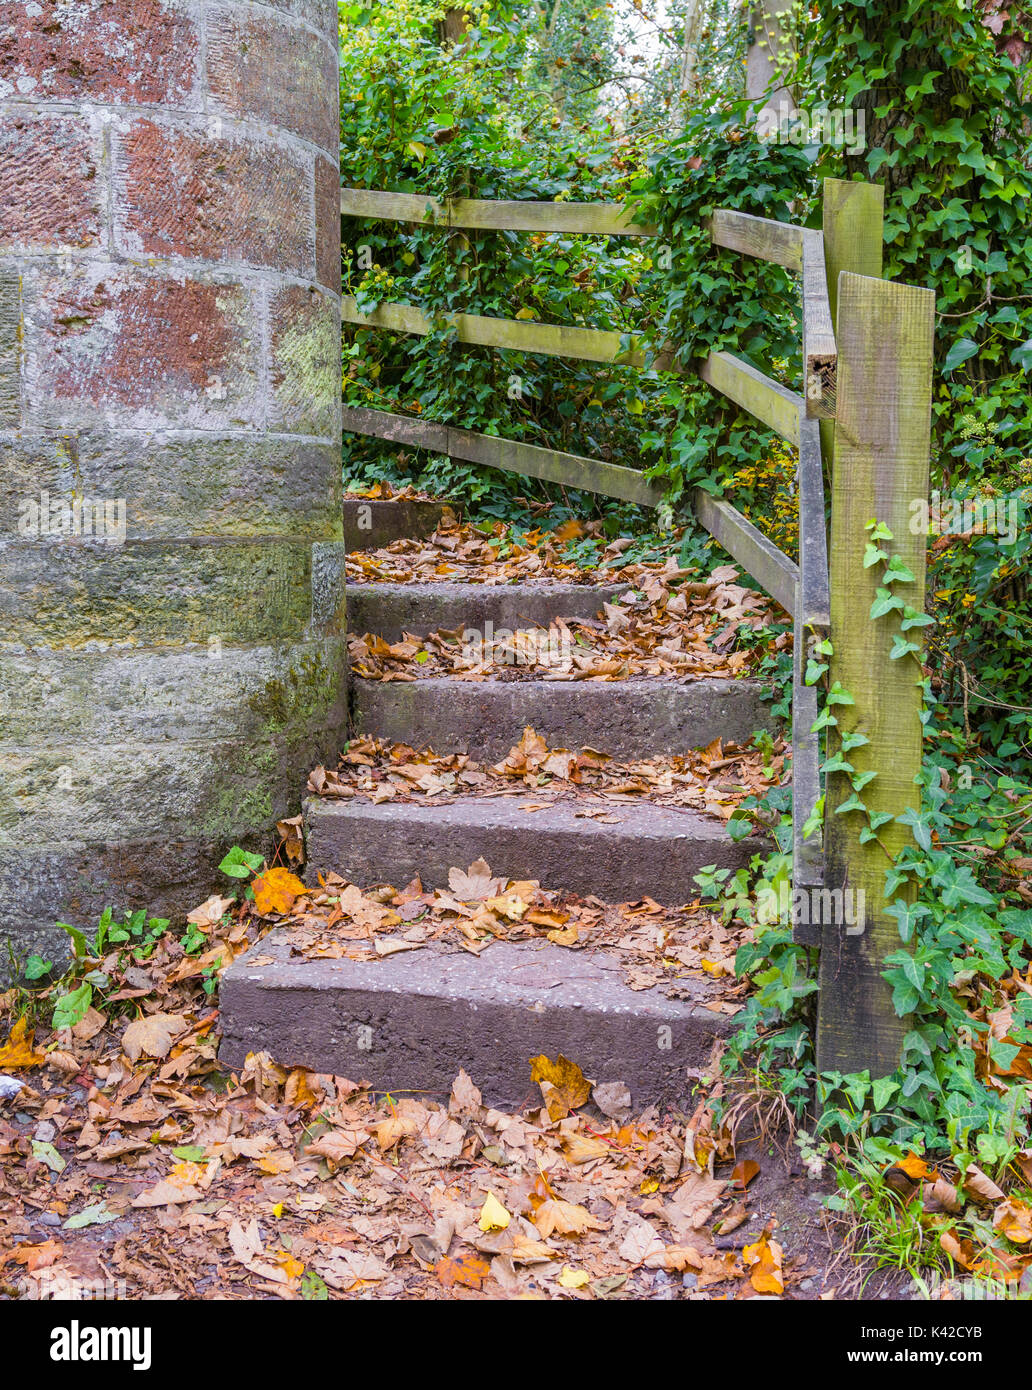 leaves-on-the-ground-on-old-stone-steps-